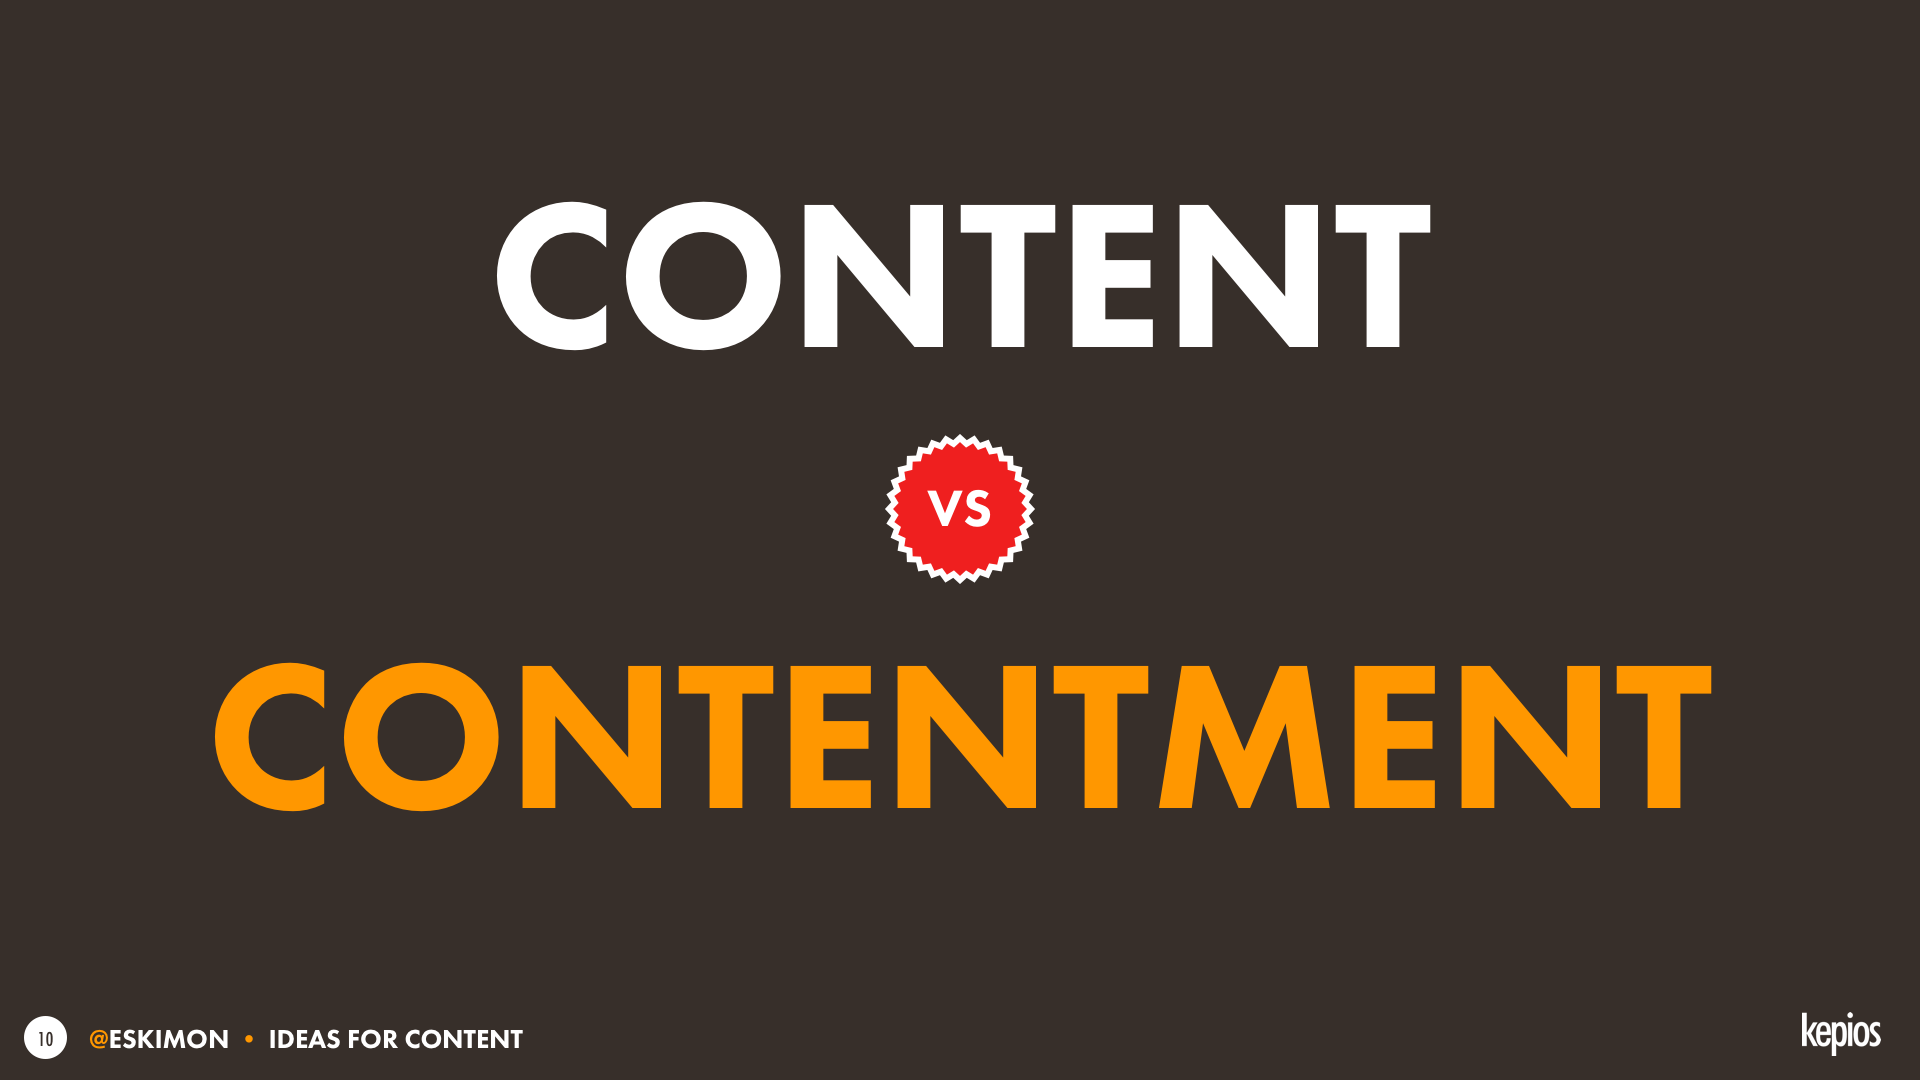 Content needs to drive contentment